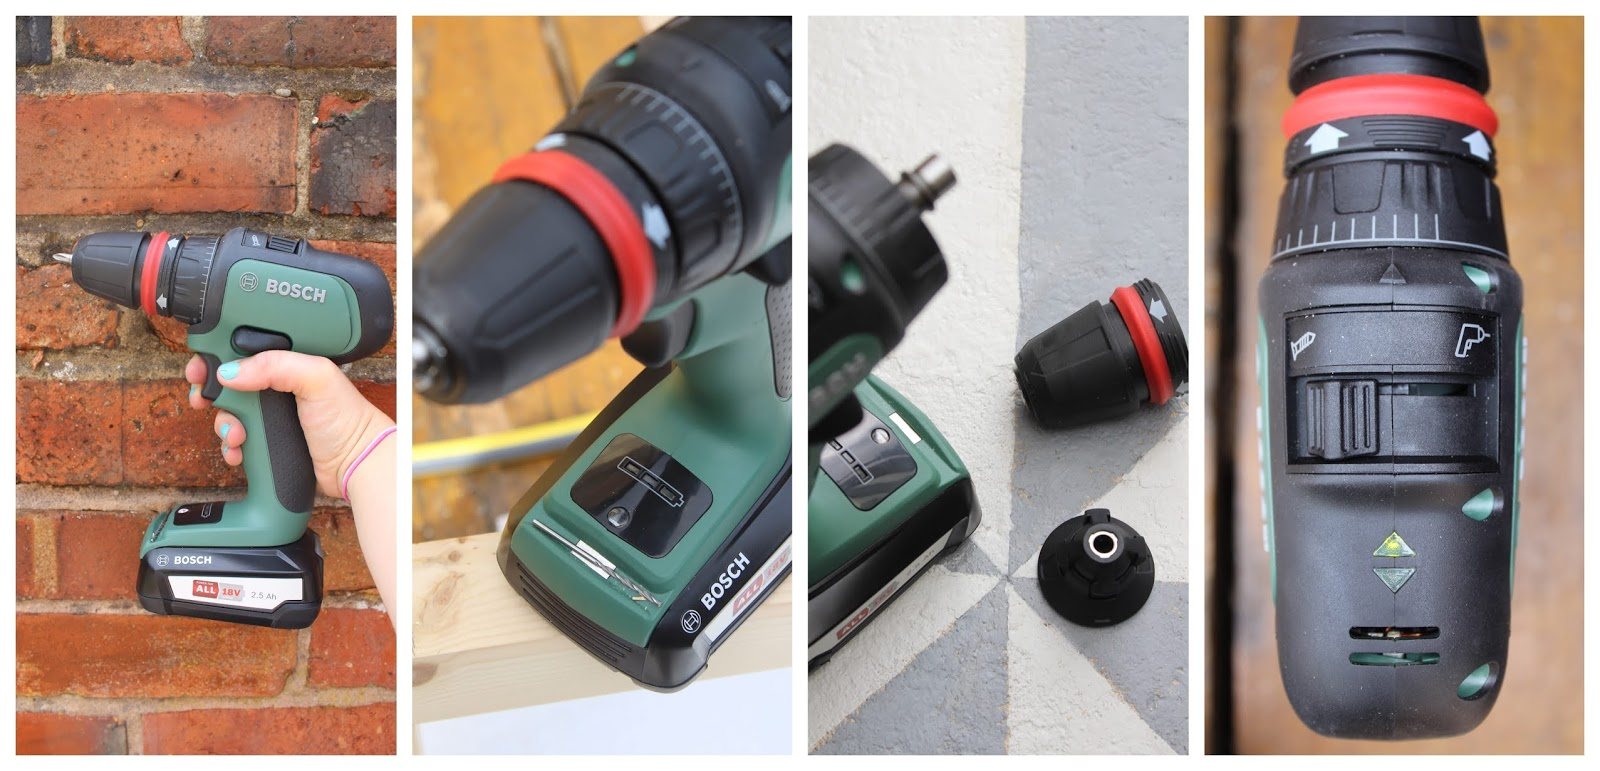 Bosch Cordless Drill Driver Review